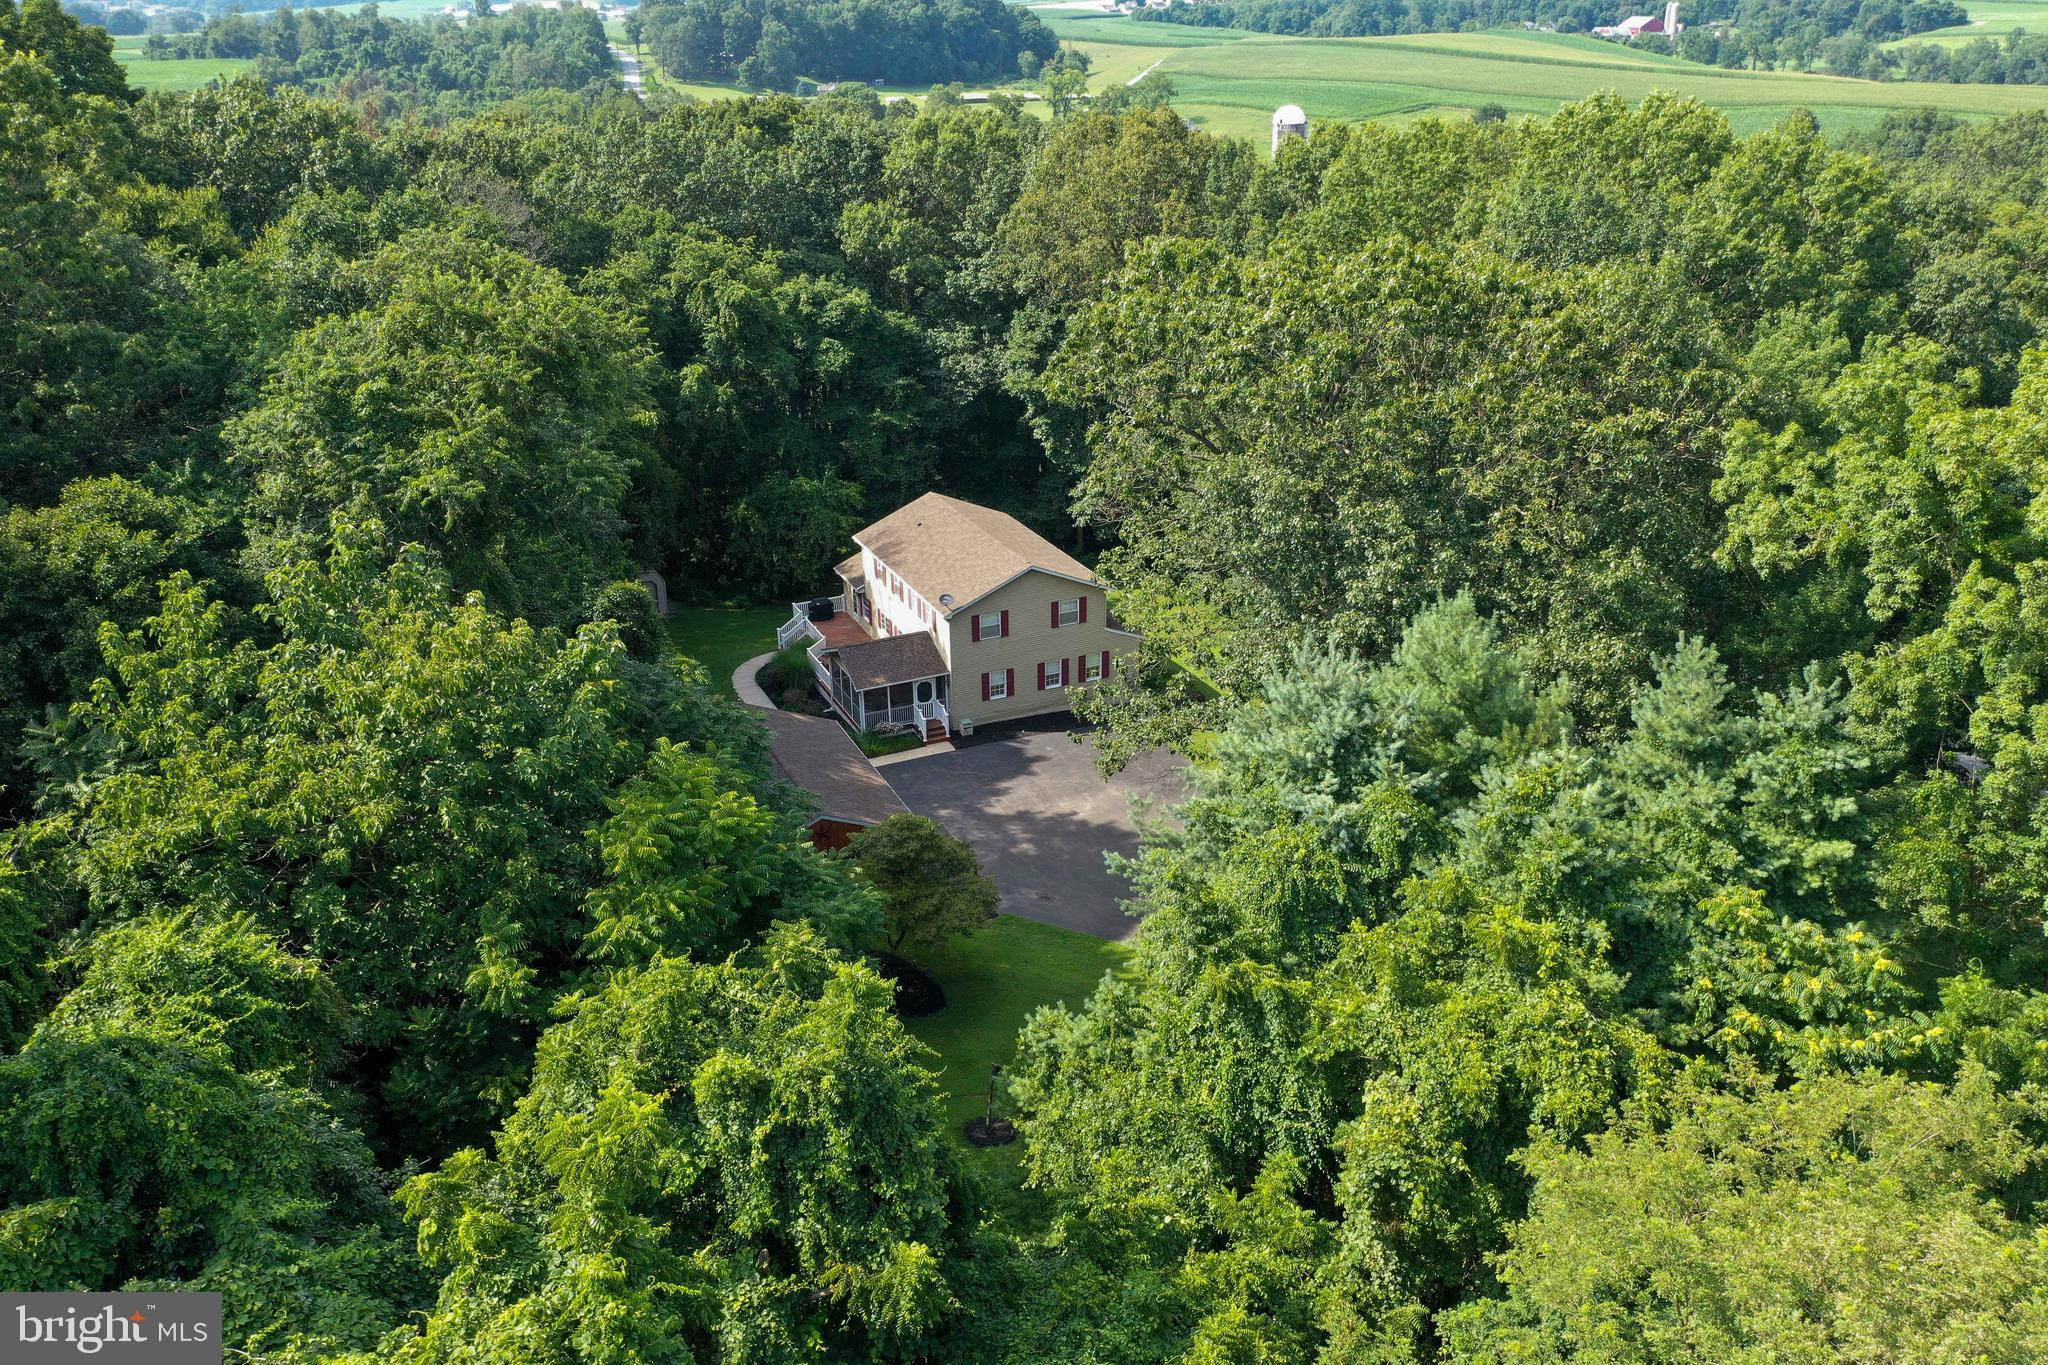 344 CEDAR HILL ROAD, PEACH BOTTOM, PA 17563